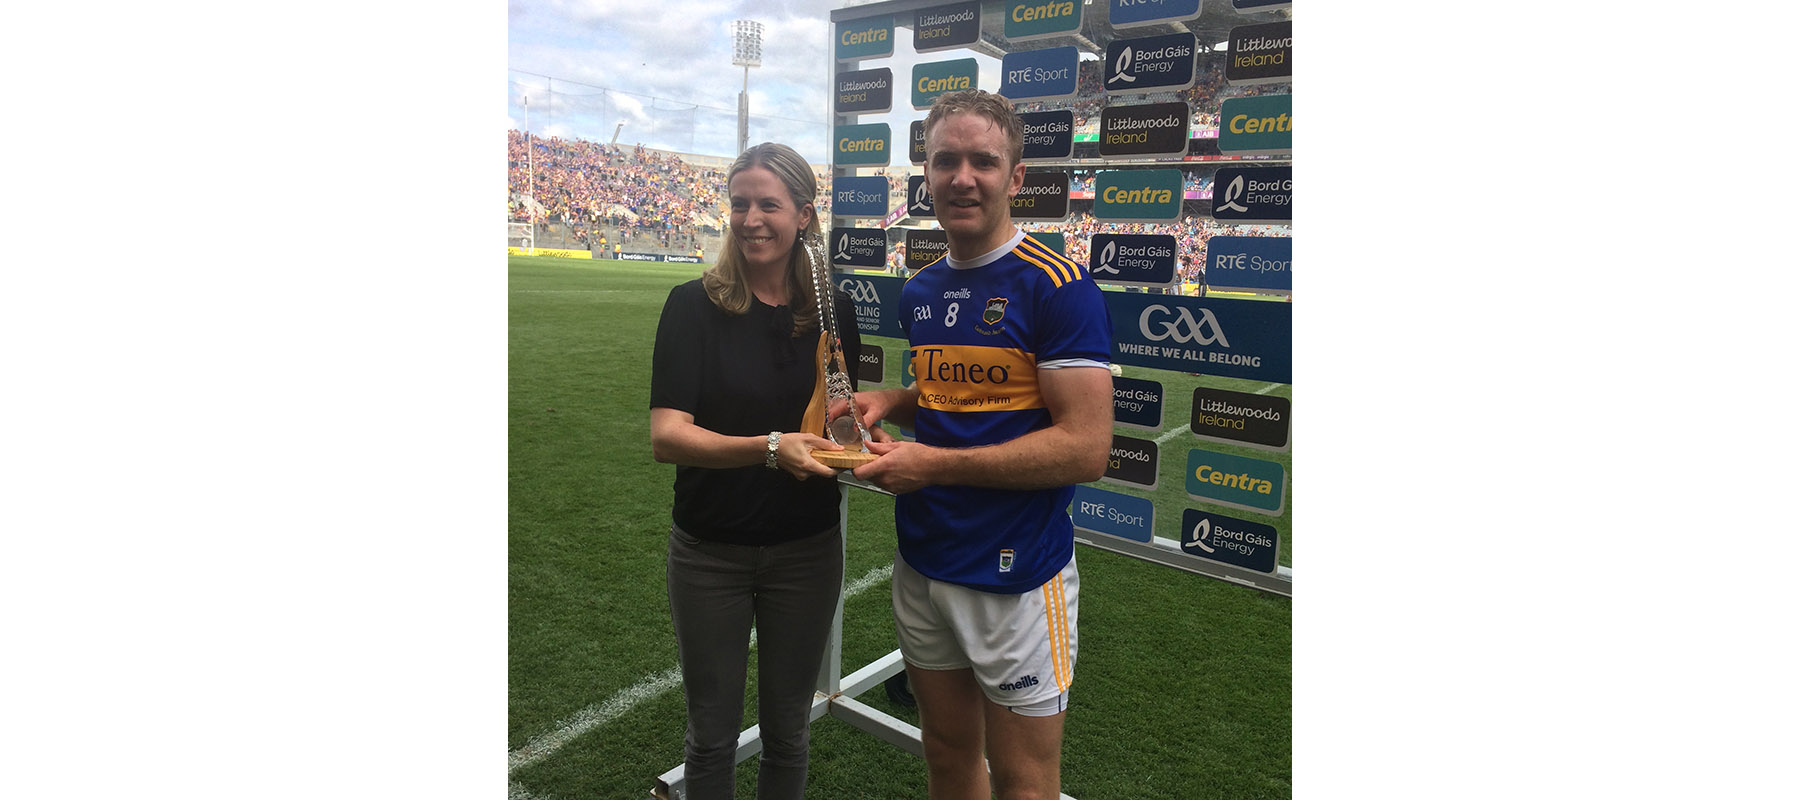 Tipperary GAA Scene brings you all the up-to-date news for